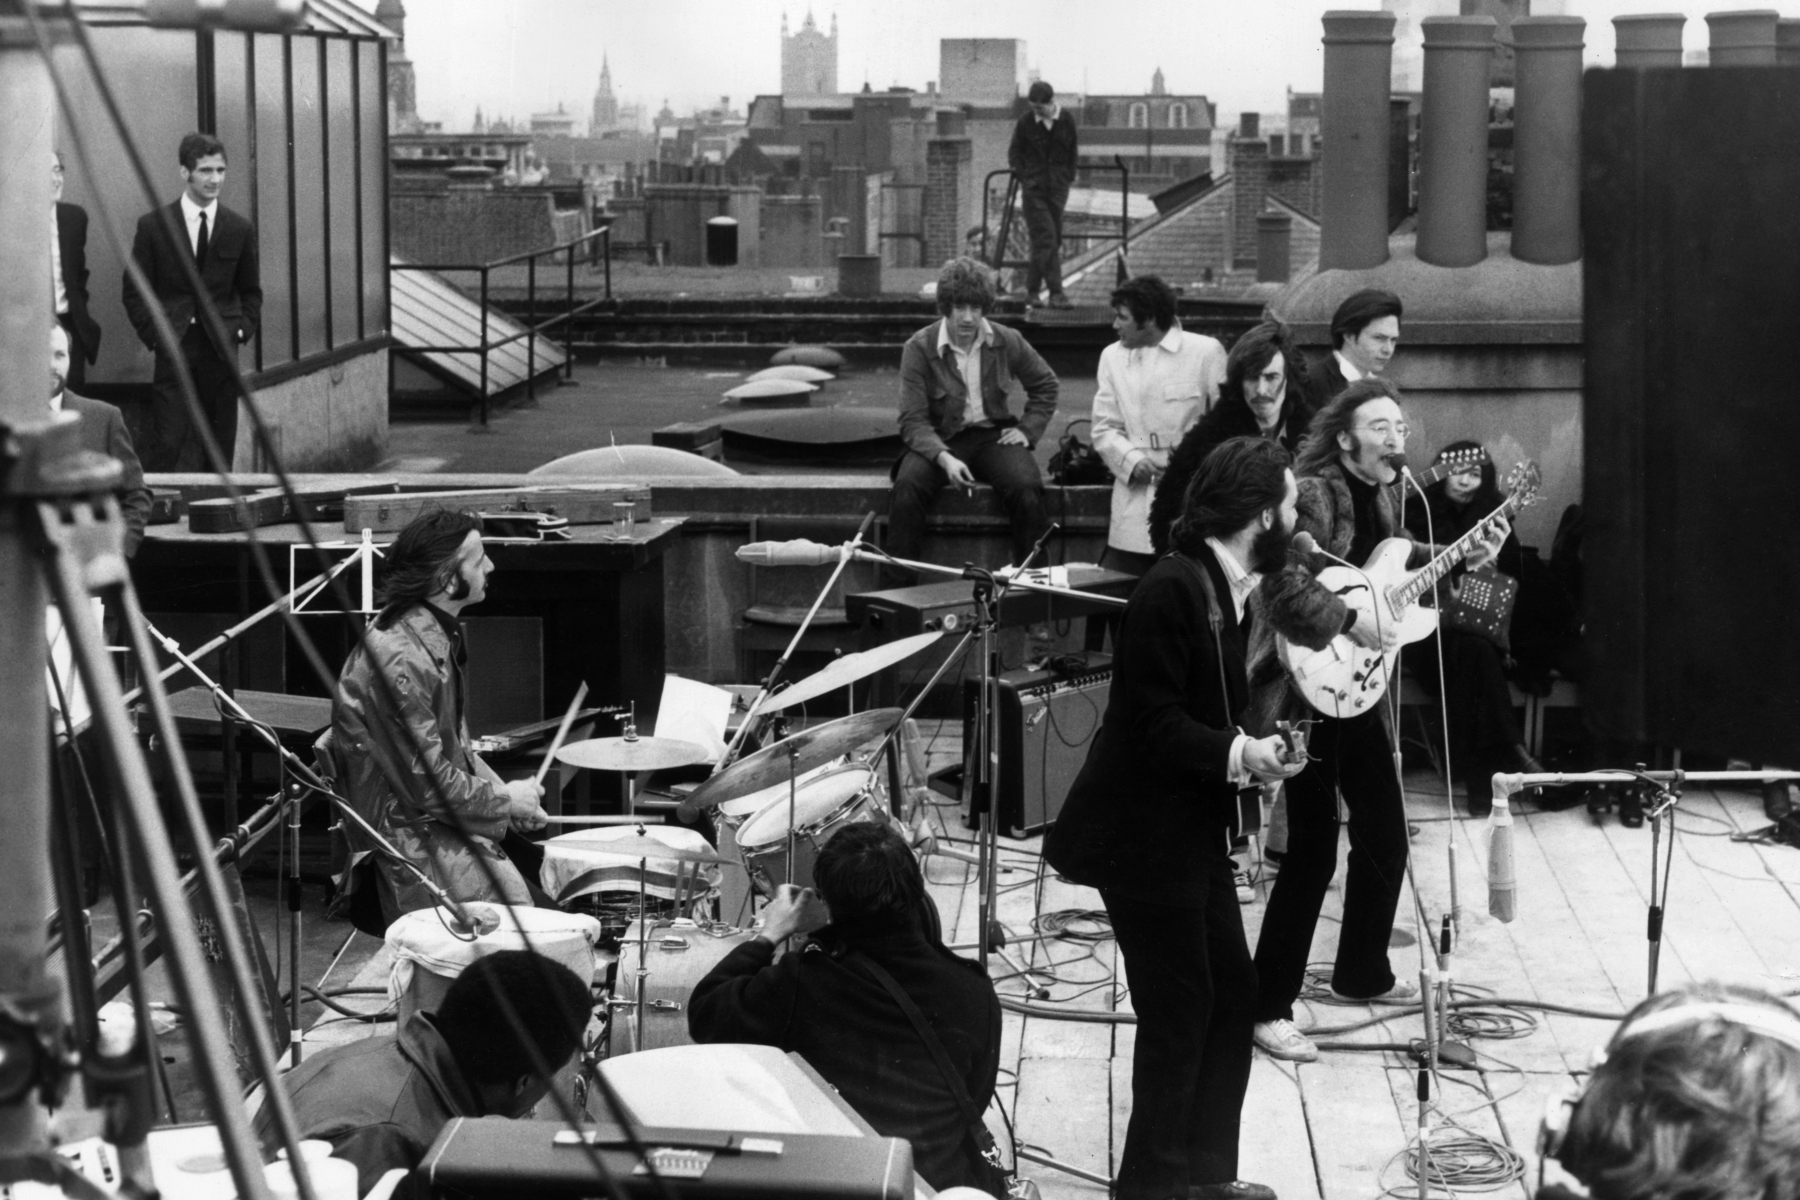 Rooftop; Beatles